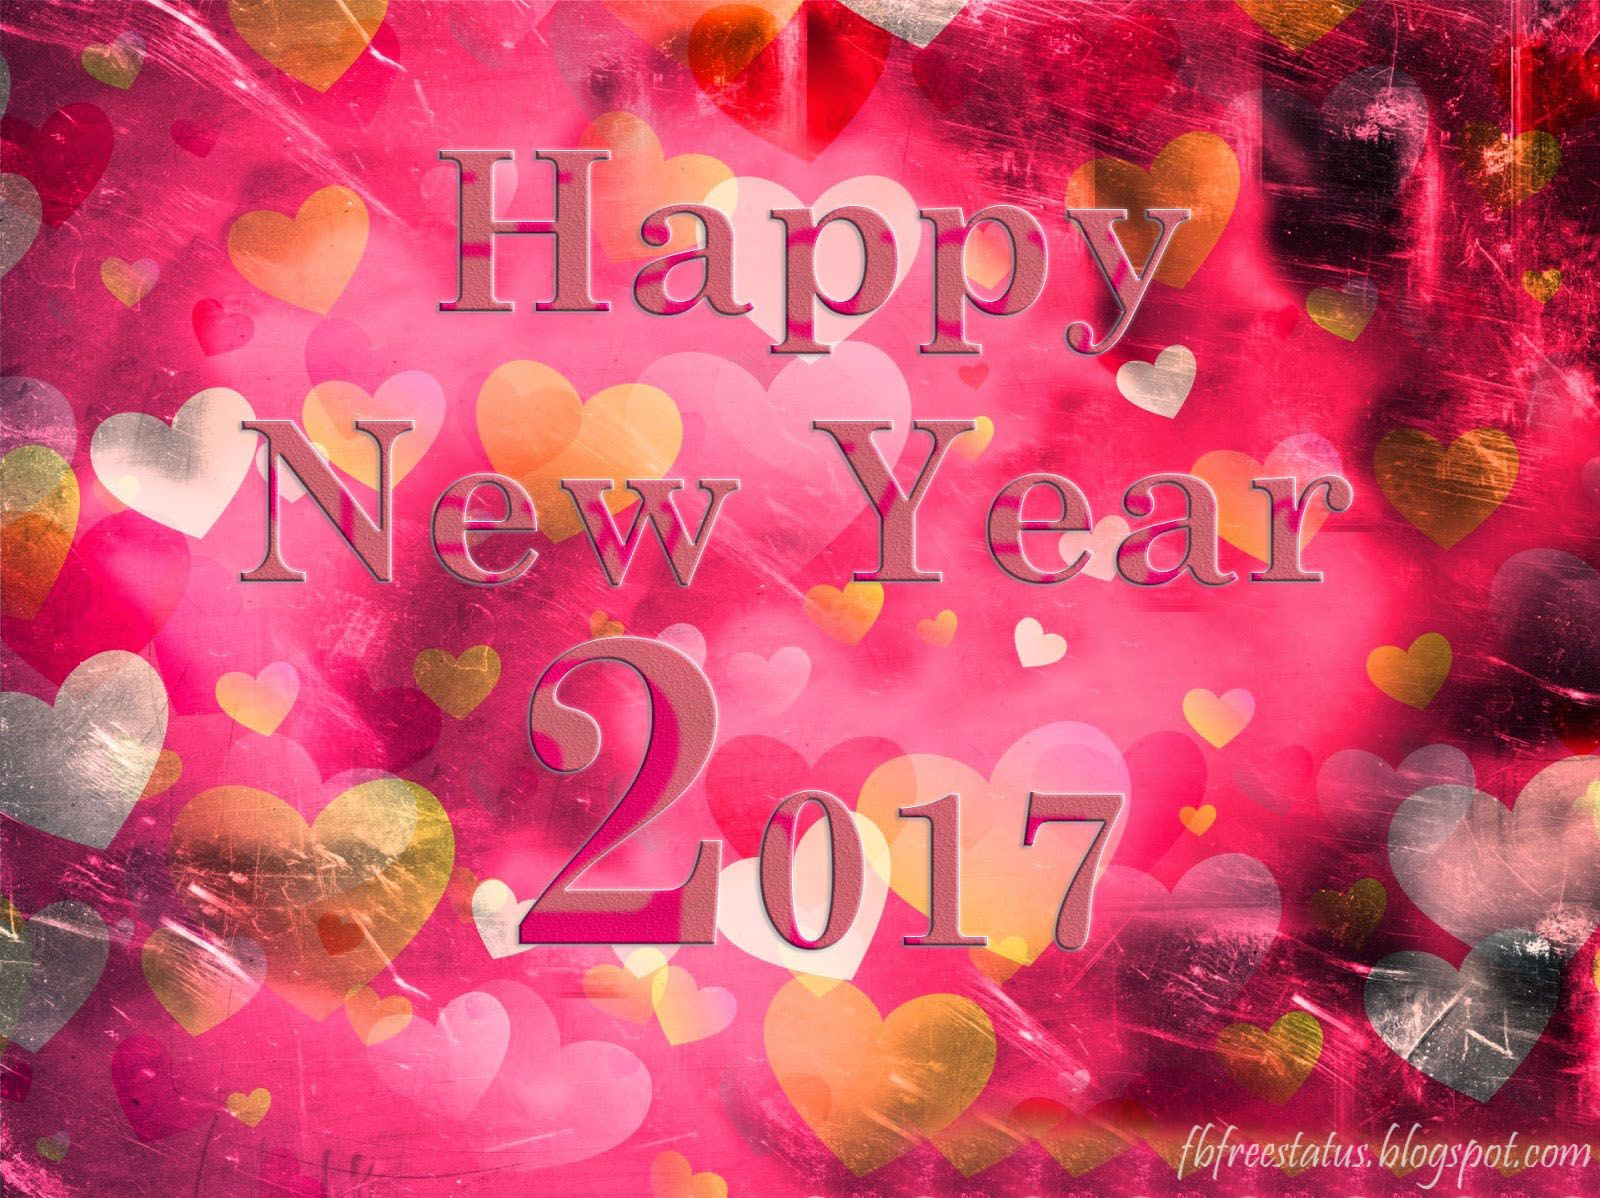 Happy New Year 2020 HD Wallpapers Images And Wishes Happy new 1600x1198